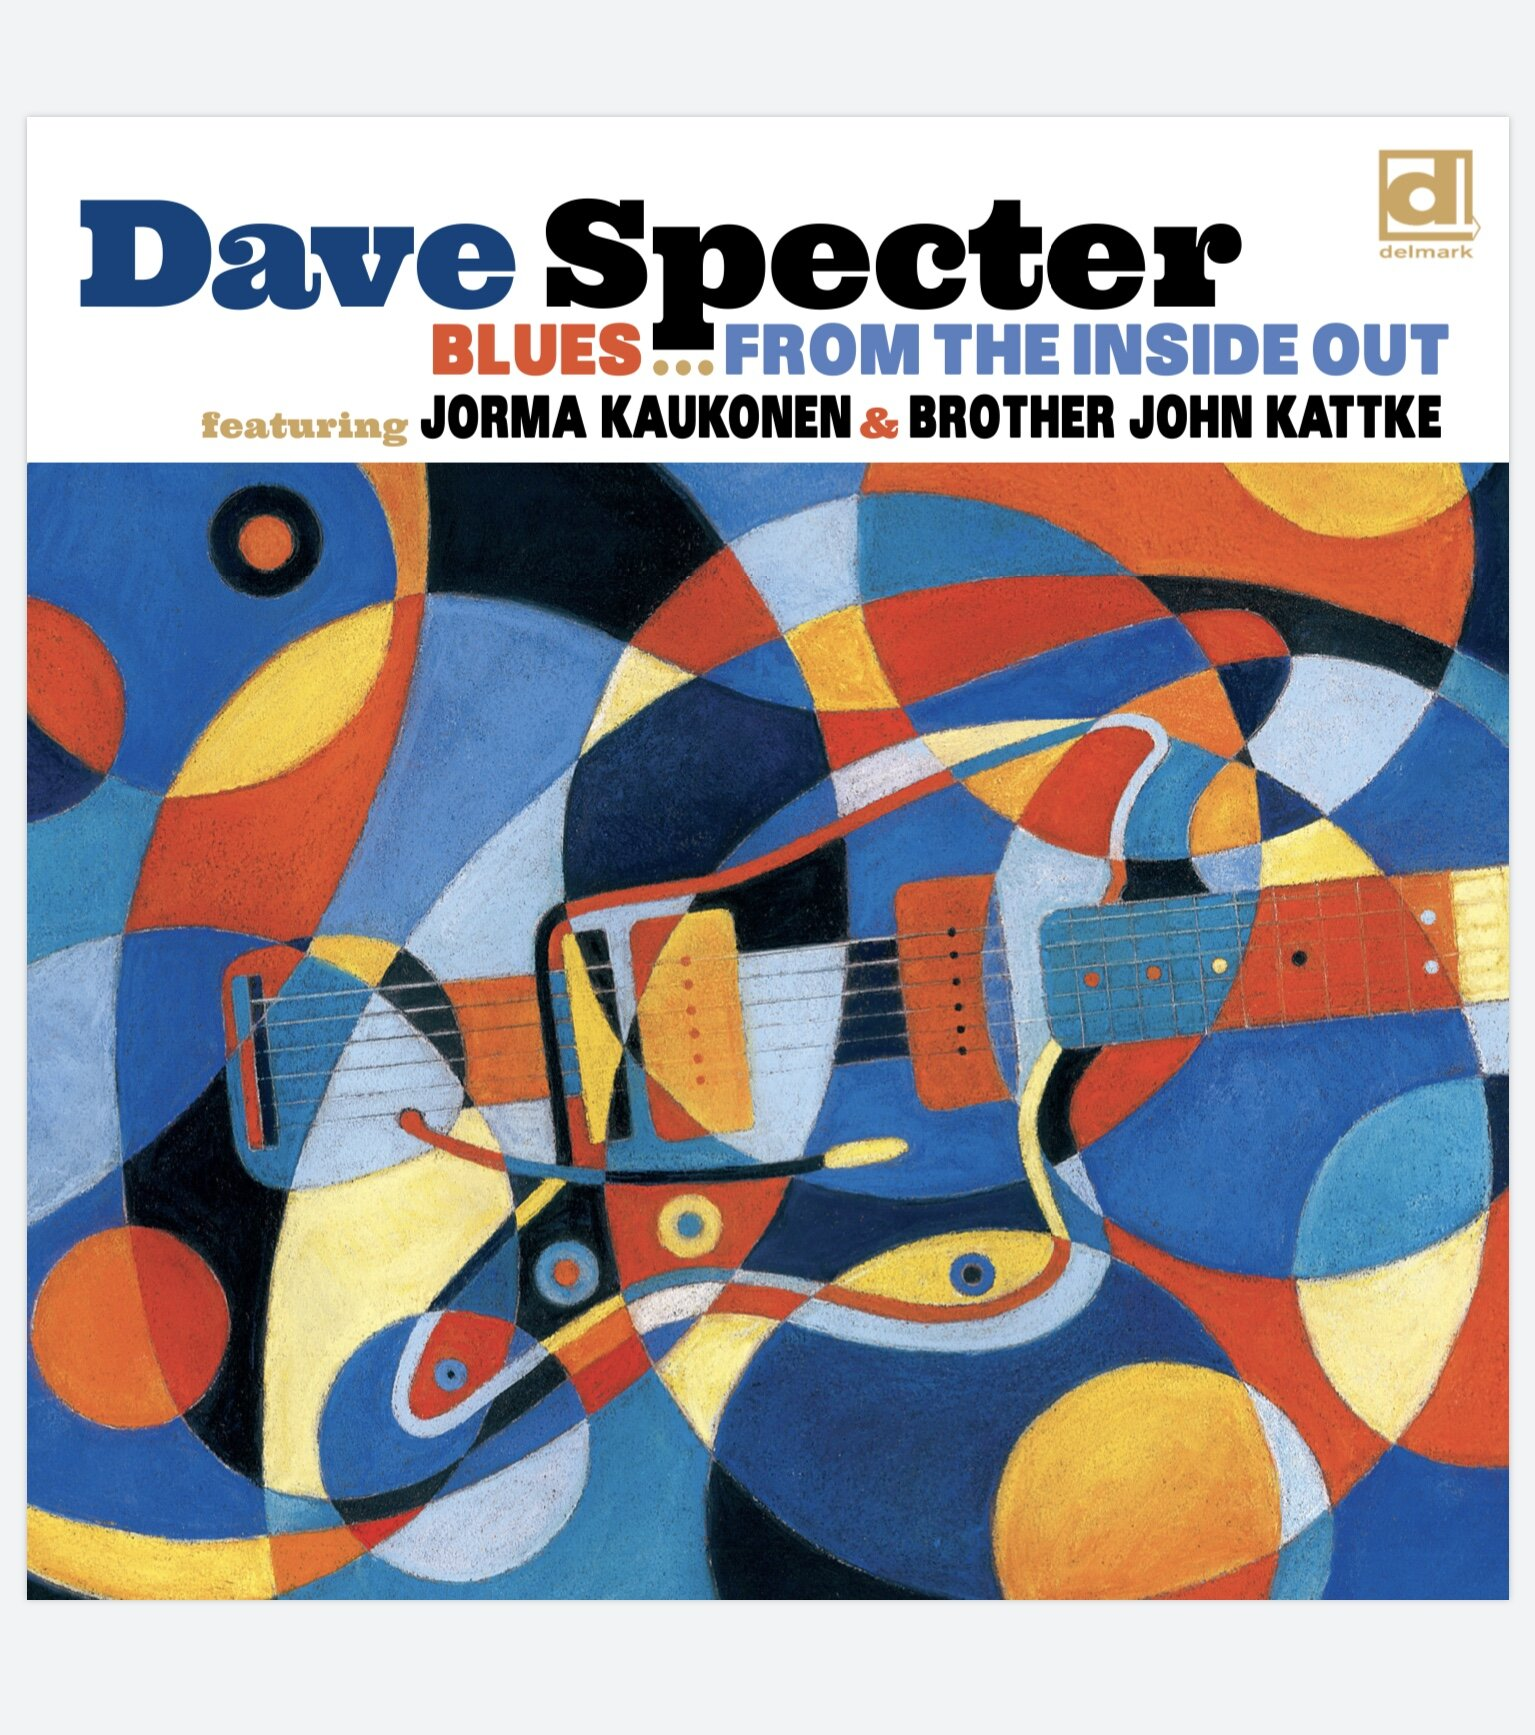 """BLUES FROM THE INSIDE OUT:CD & LP - Blues From The Inside Out is the most expressive project of Dave Specter's 35-year career. Featuring his debut as a vocalist, the album is an exciting and timely celebration of blues, soul, jazz, funk and gospel. These are fine times to hear Specter, an evolving artist who embraces growth and discovery.Blues From The Inside Out includes a guest appearance on guitar by Jorma Kaukonen of Jefferson Airplane/Hot Tuna fame, who also co-wrote one of the album's 12 original tunes. Specter wrote the uplifting soul anthem for change """"March Through the Darkness,"""" he takes a deep dive into Meters-Neville Brothers inspired rhythms with the instrumental """"Sanctifunkious"""" and sings on the blues shuffle title track. Besides Kaukonen, Specter recruited the Chicago-based Liquid Soul horns and Latin-percussion ace Ruben Alvarez, each playing on three tracks."""